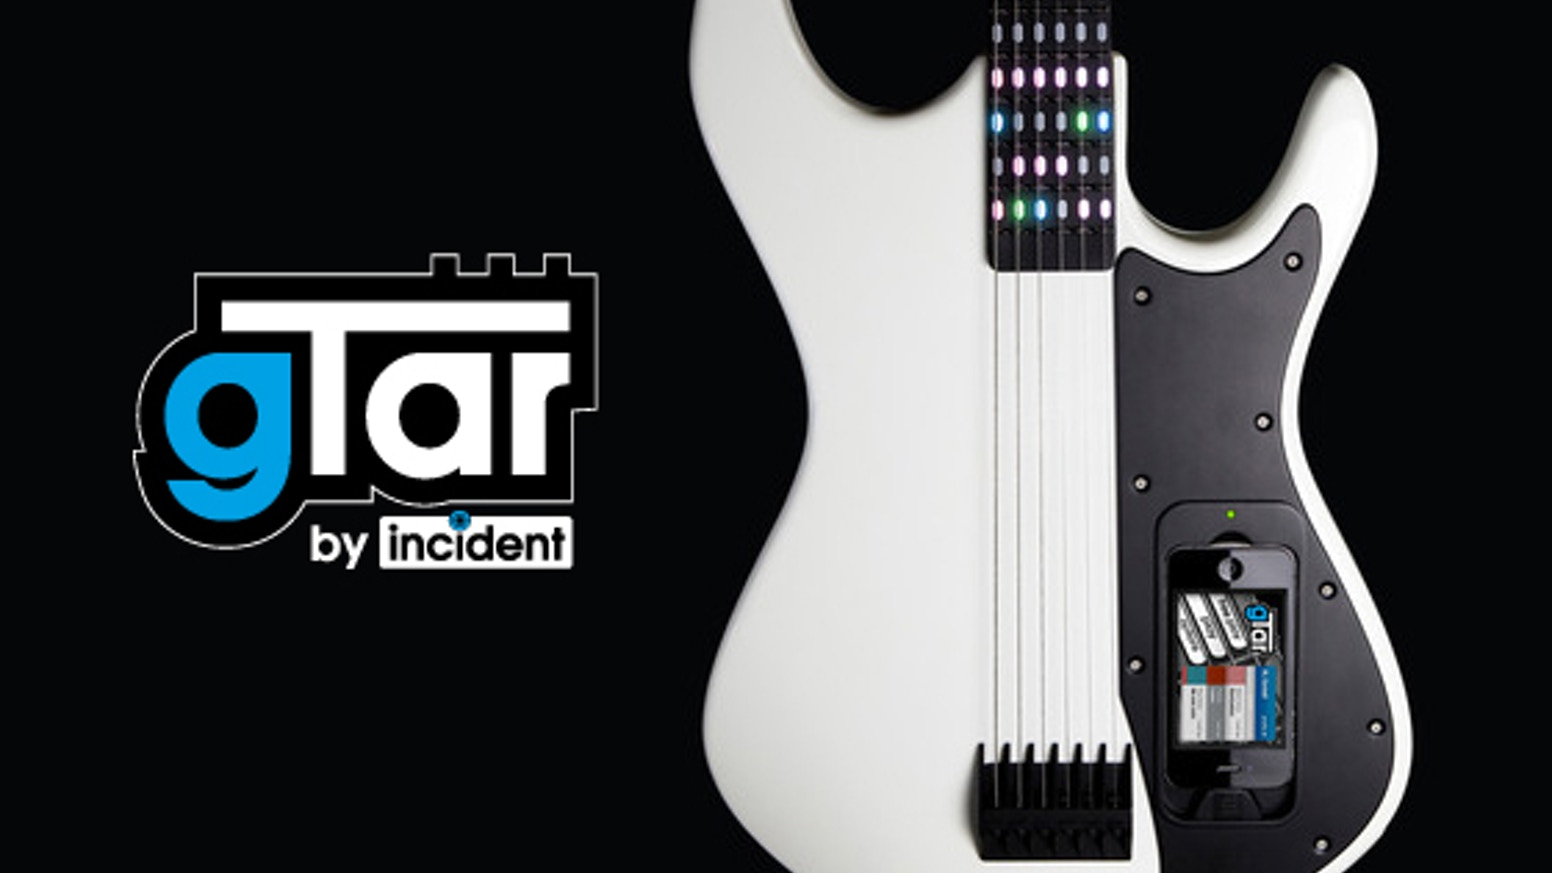 Gtar The First Guitar That Anybody Can Play By Incident Kickstarter Electric Diagram Intuitive Is A Fully Digital Enables To Music Quickly And Easily